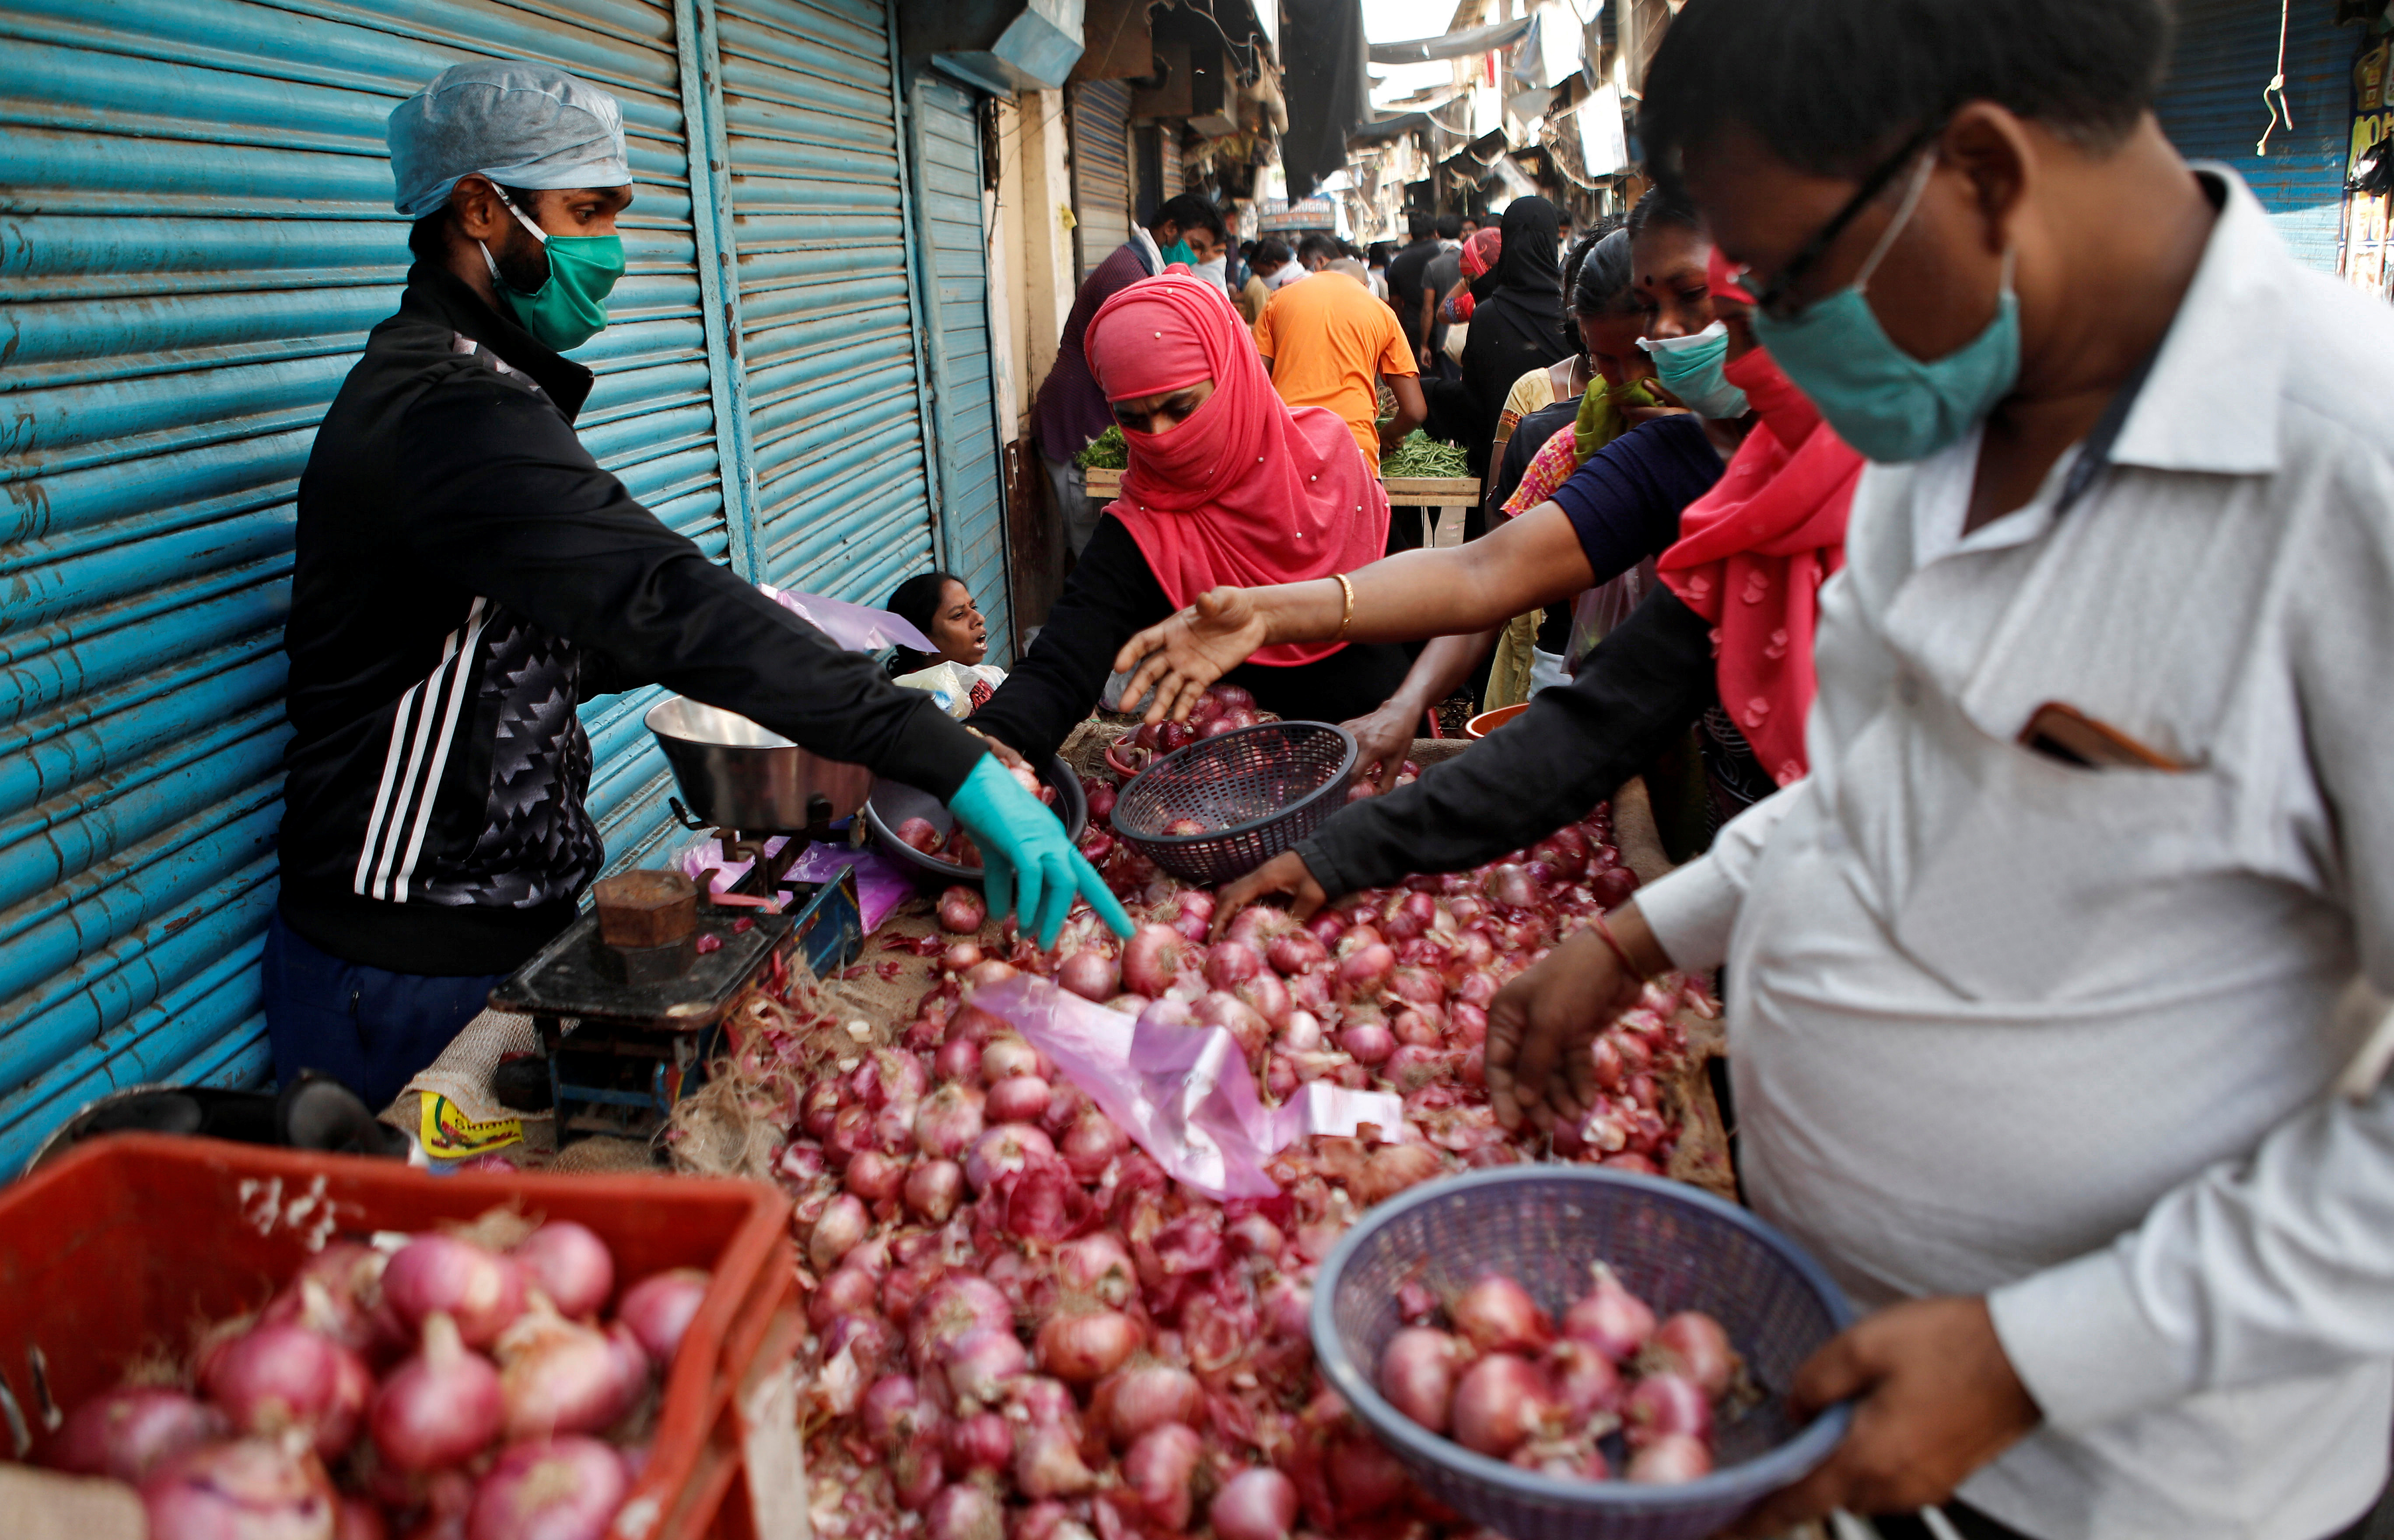 People buy onions at a market in the slum of Dharavi, Mumbai.